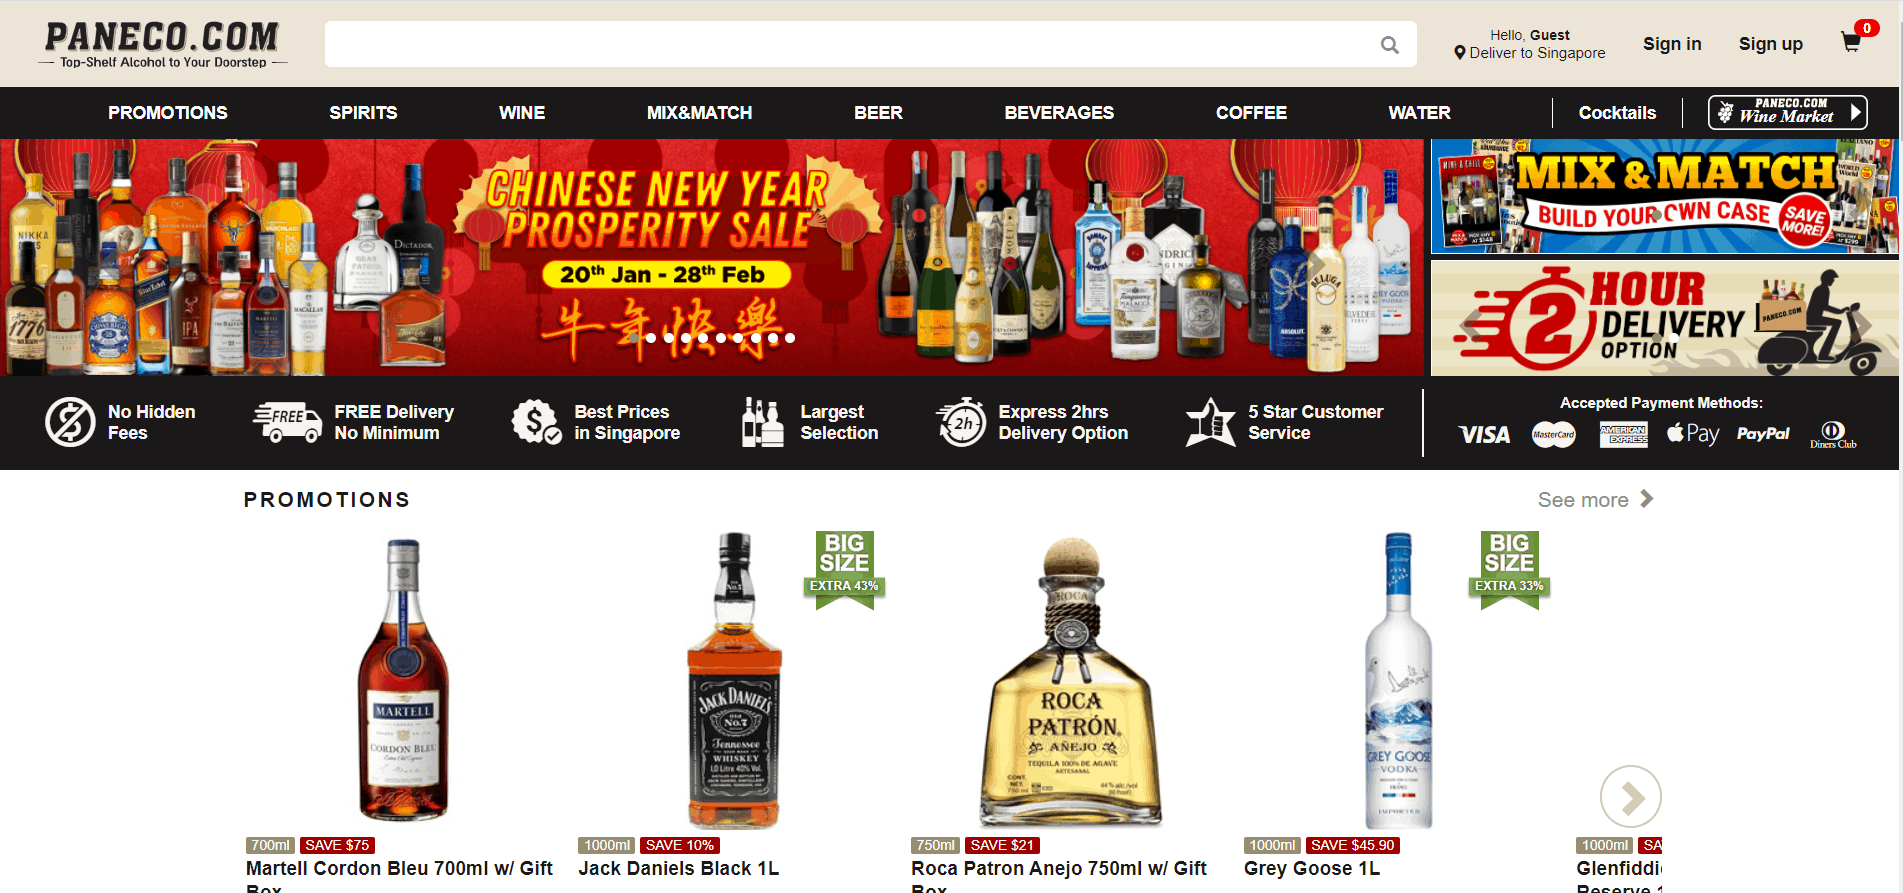 Paneco Singapore is 24hr alcohol delivery in Singapore